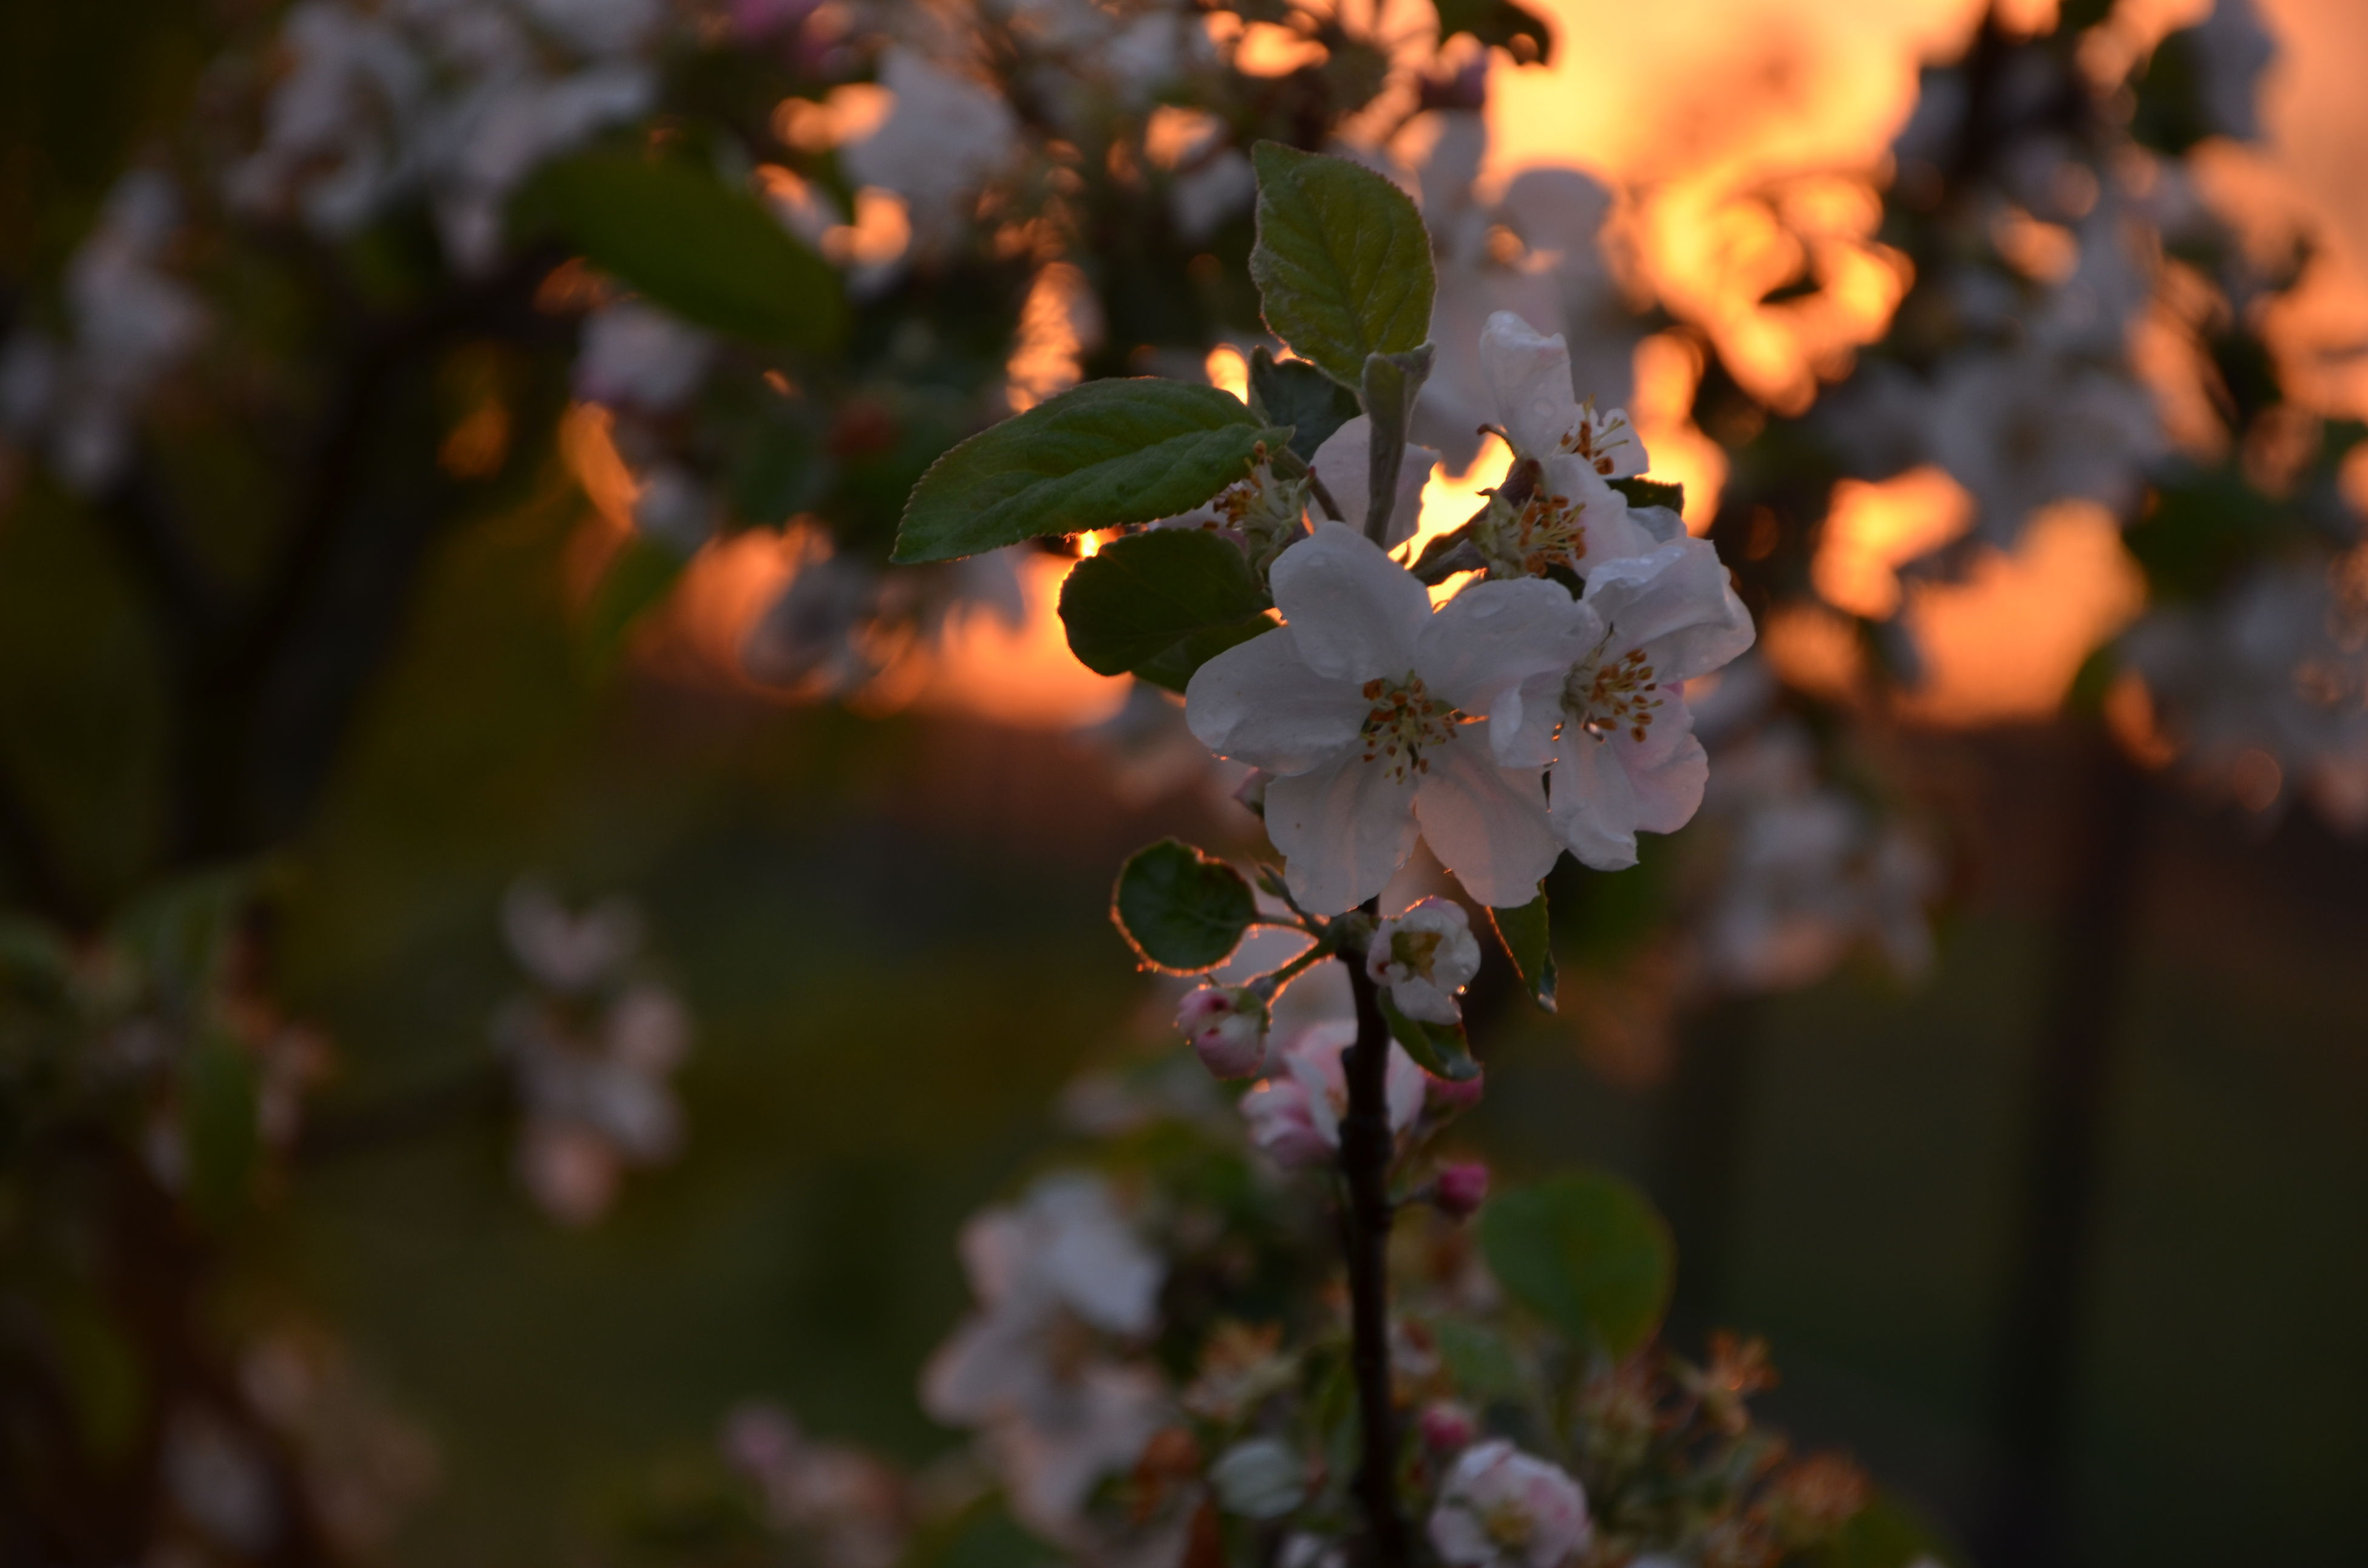 flower, freshness, growth, fragility, beauty in nature, focus on foreground, nature, close-up, petal, bud, plant, blossom, blooming, in bloom, branch, flower head, selective focus, springtime, leaf, stem